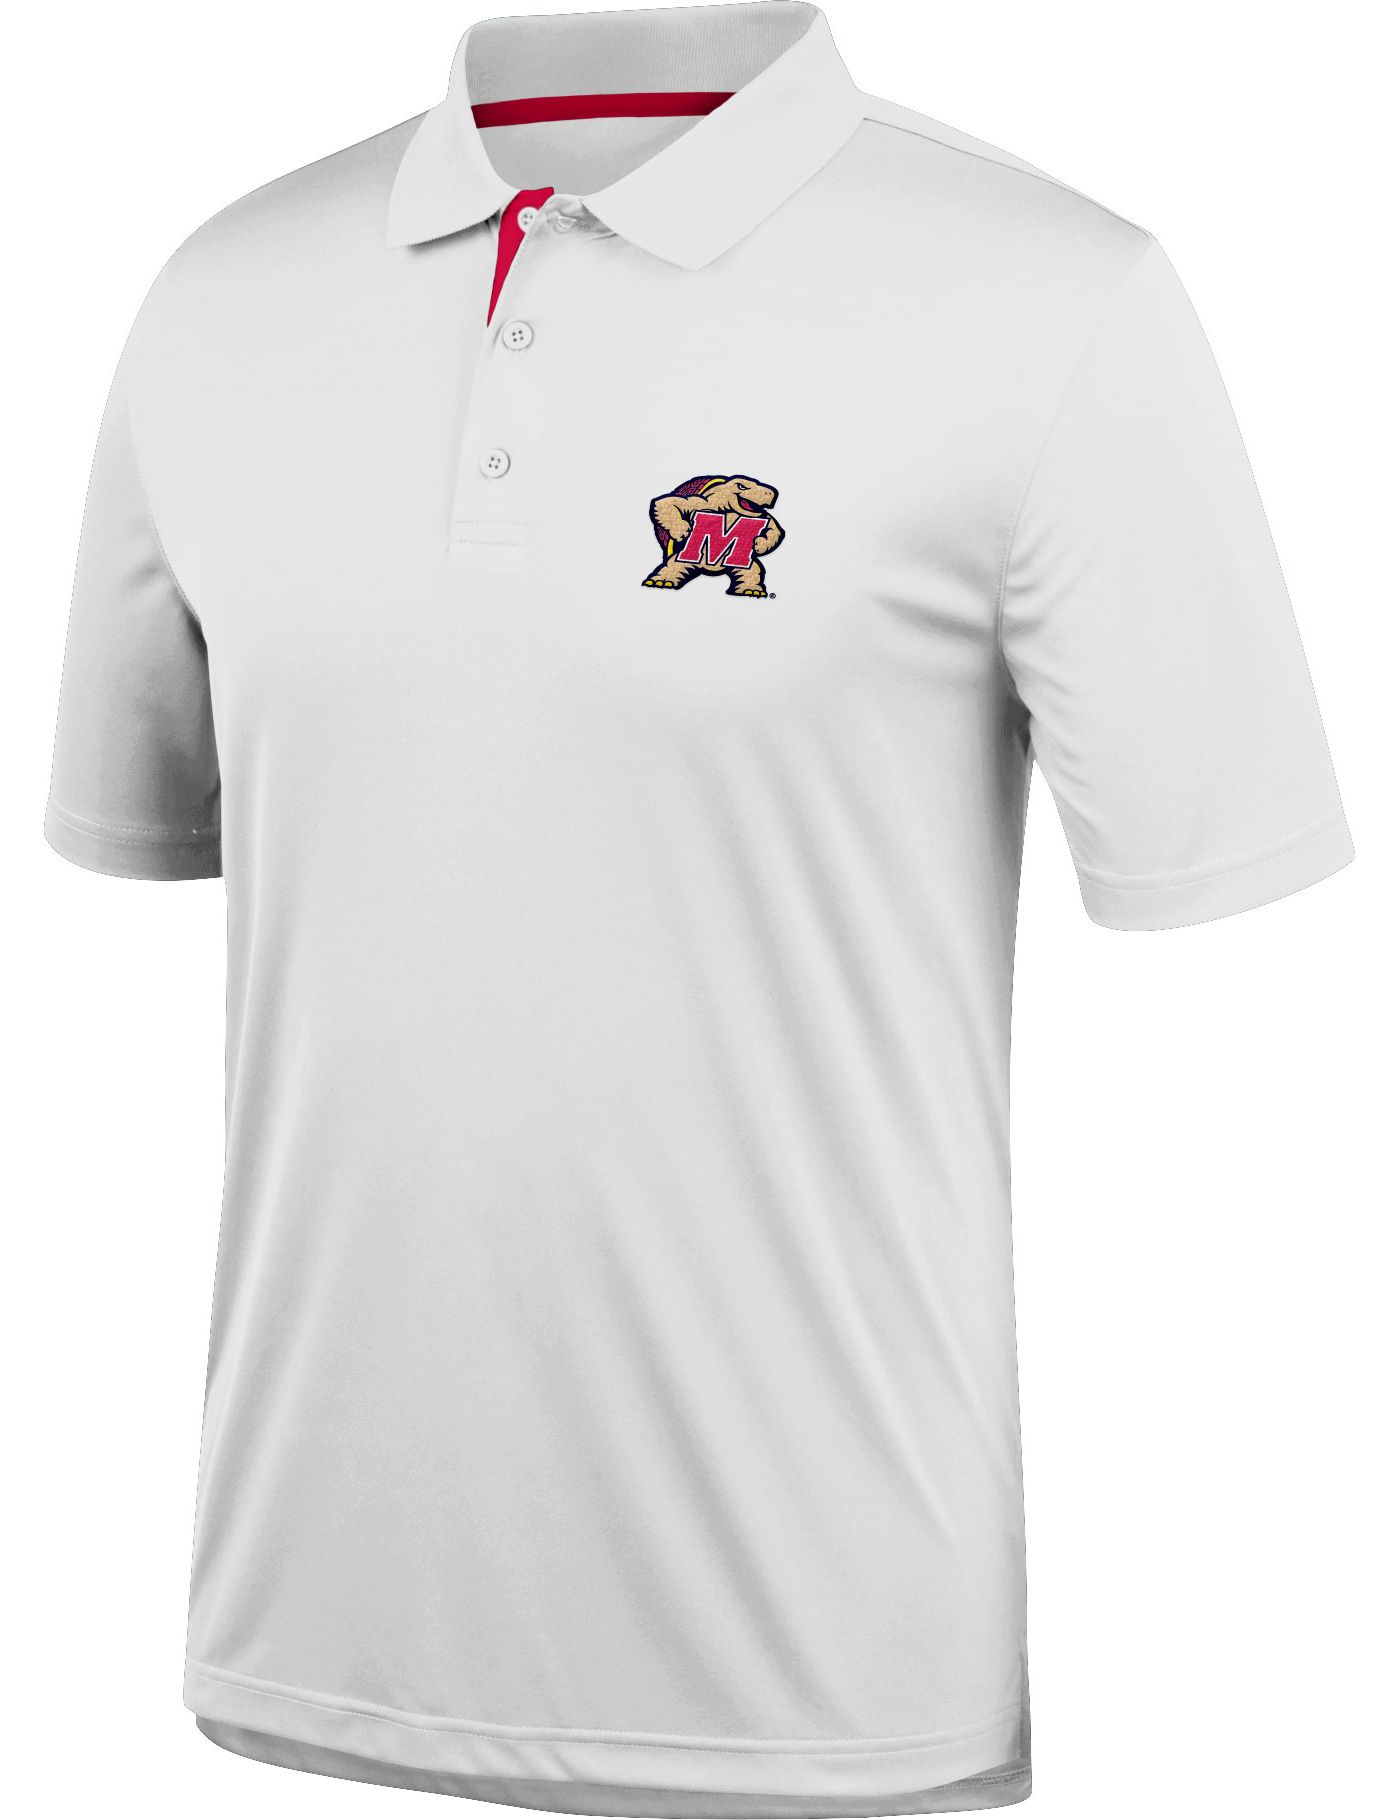 Top of the World Men's Maryland Terrapins Spector White Polo